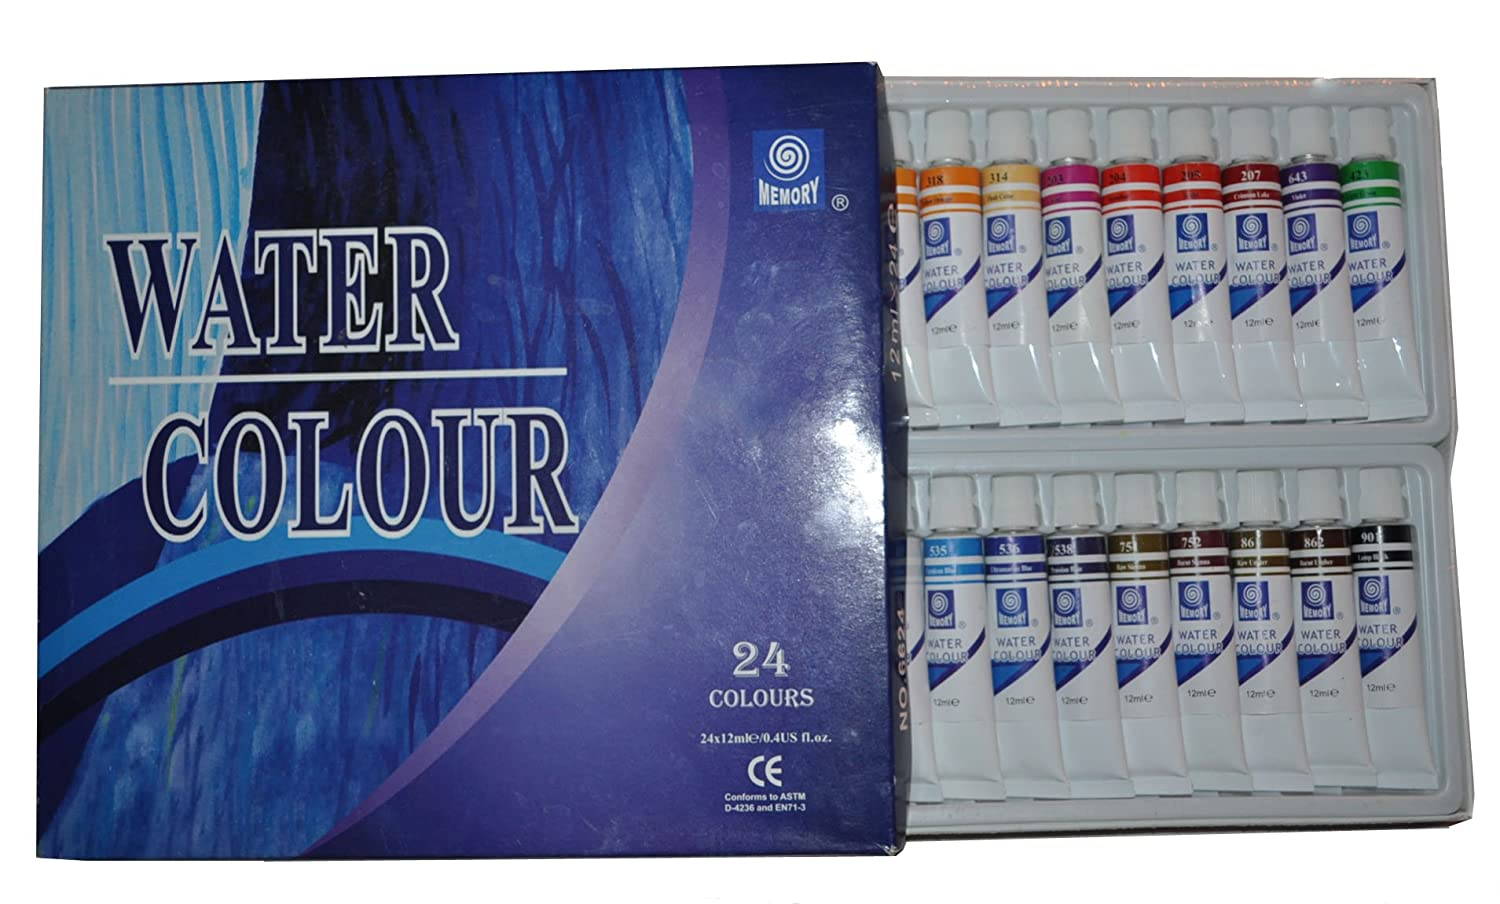 Memory Professional Artists Watercolour Paint Set, 24 Colours in 12ml Alumenium Tubes, Retail Packed - advance purchas special